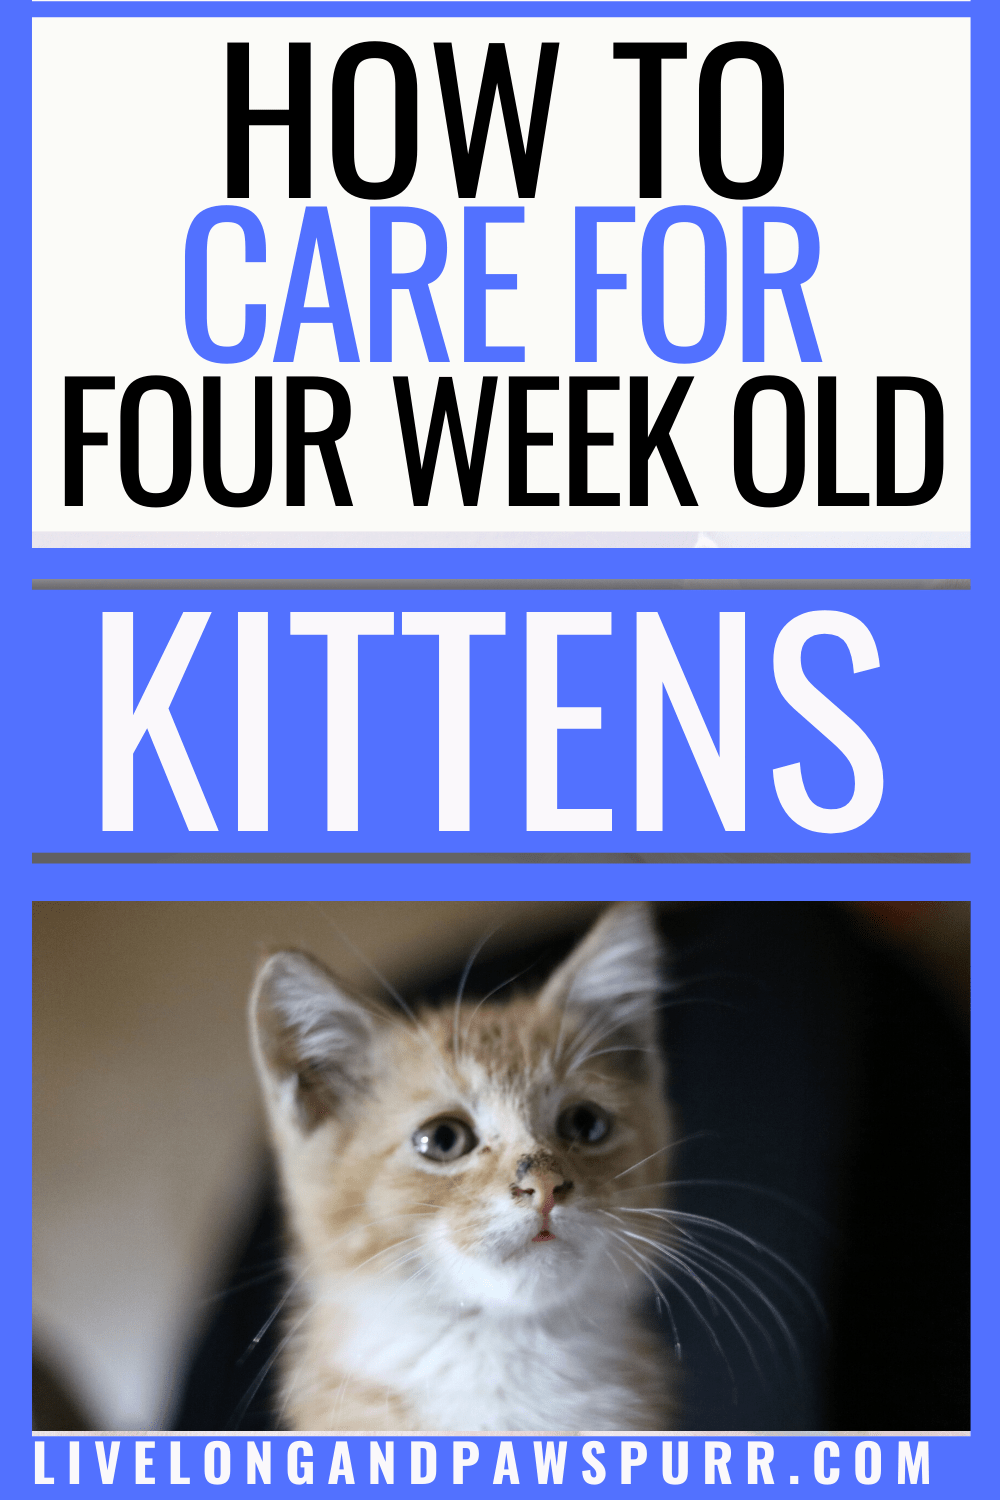 The Simple Guide To Caring For Four Week Old Kittens Live Long And Pawspurr In 2020 Kitten Care Newborn Kittens Pet Care Cats